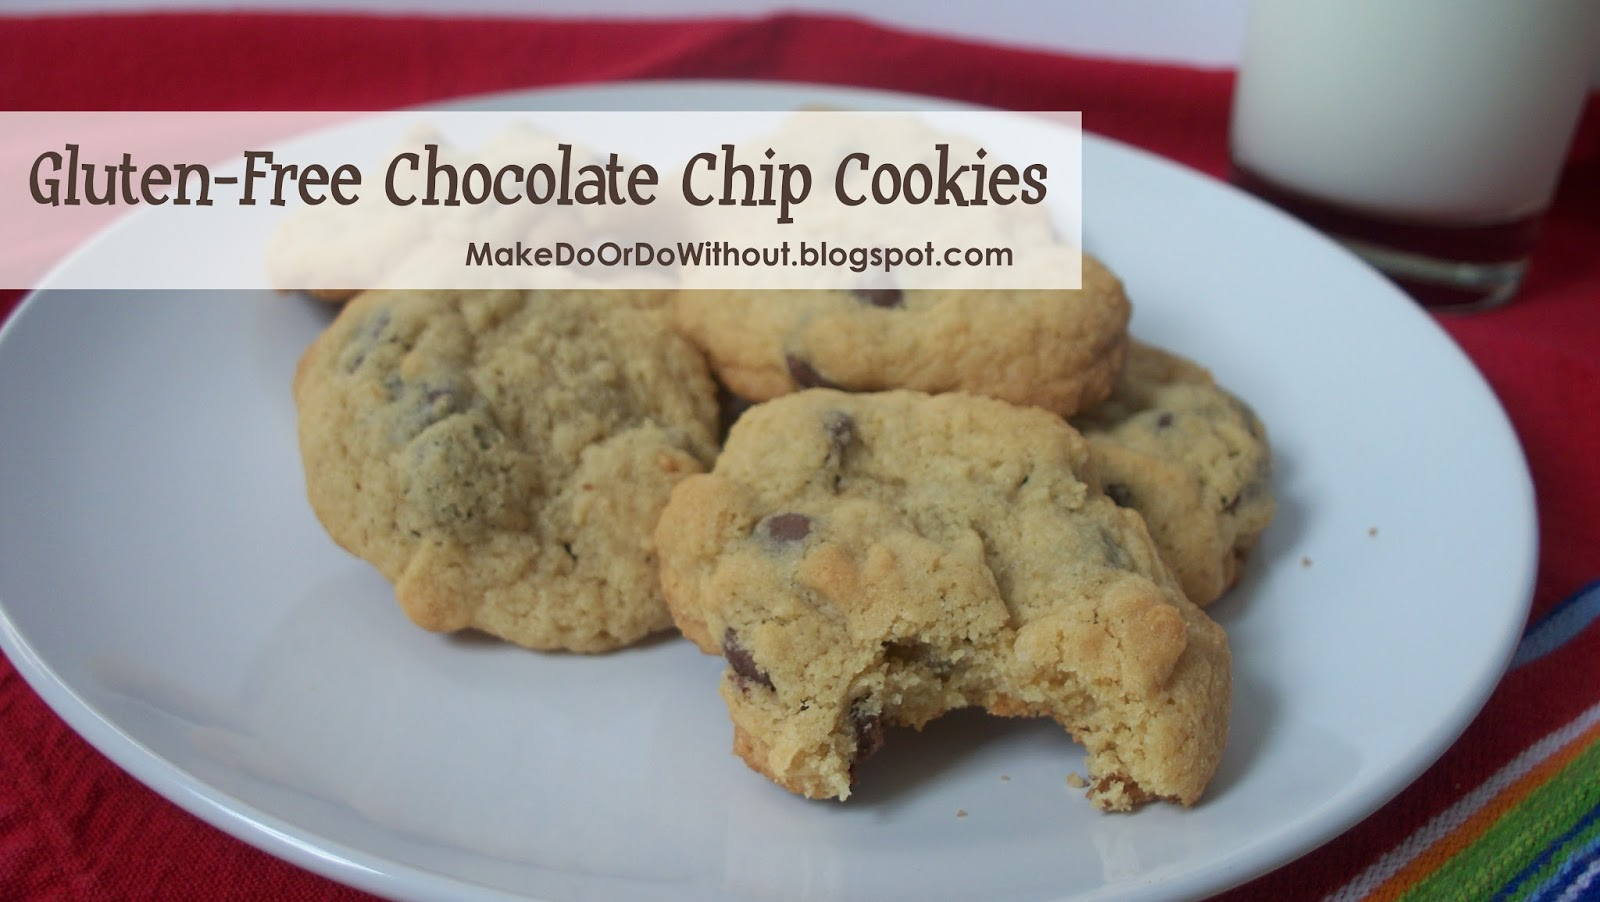 Make Do: Gluten-Free Chocolate Chip Cookies